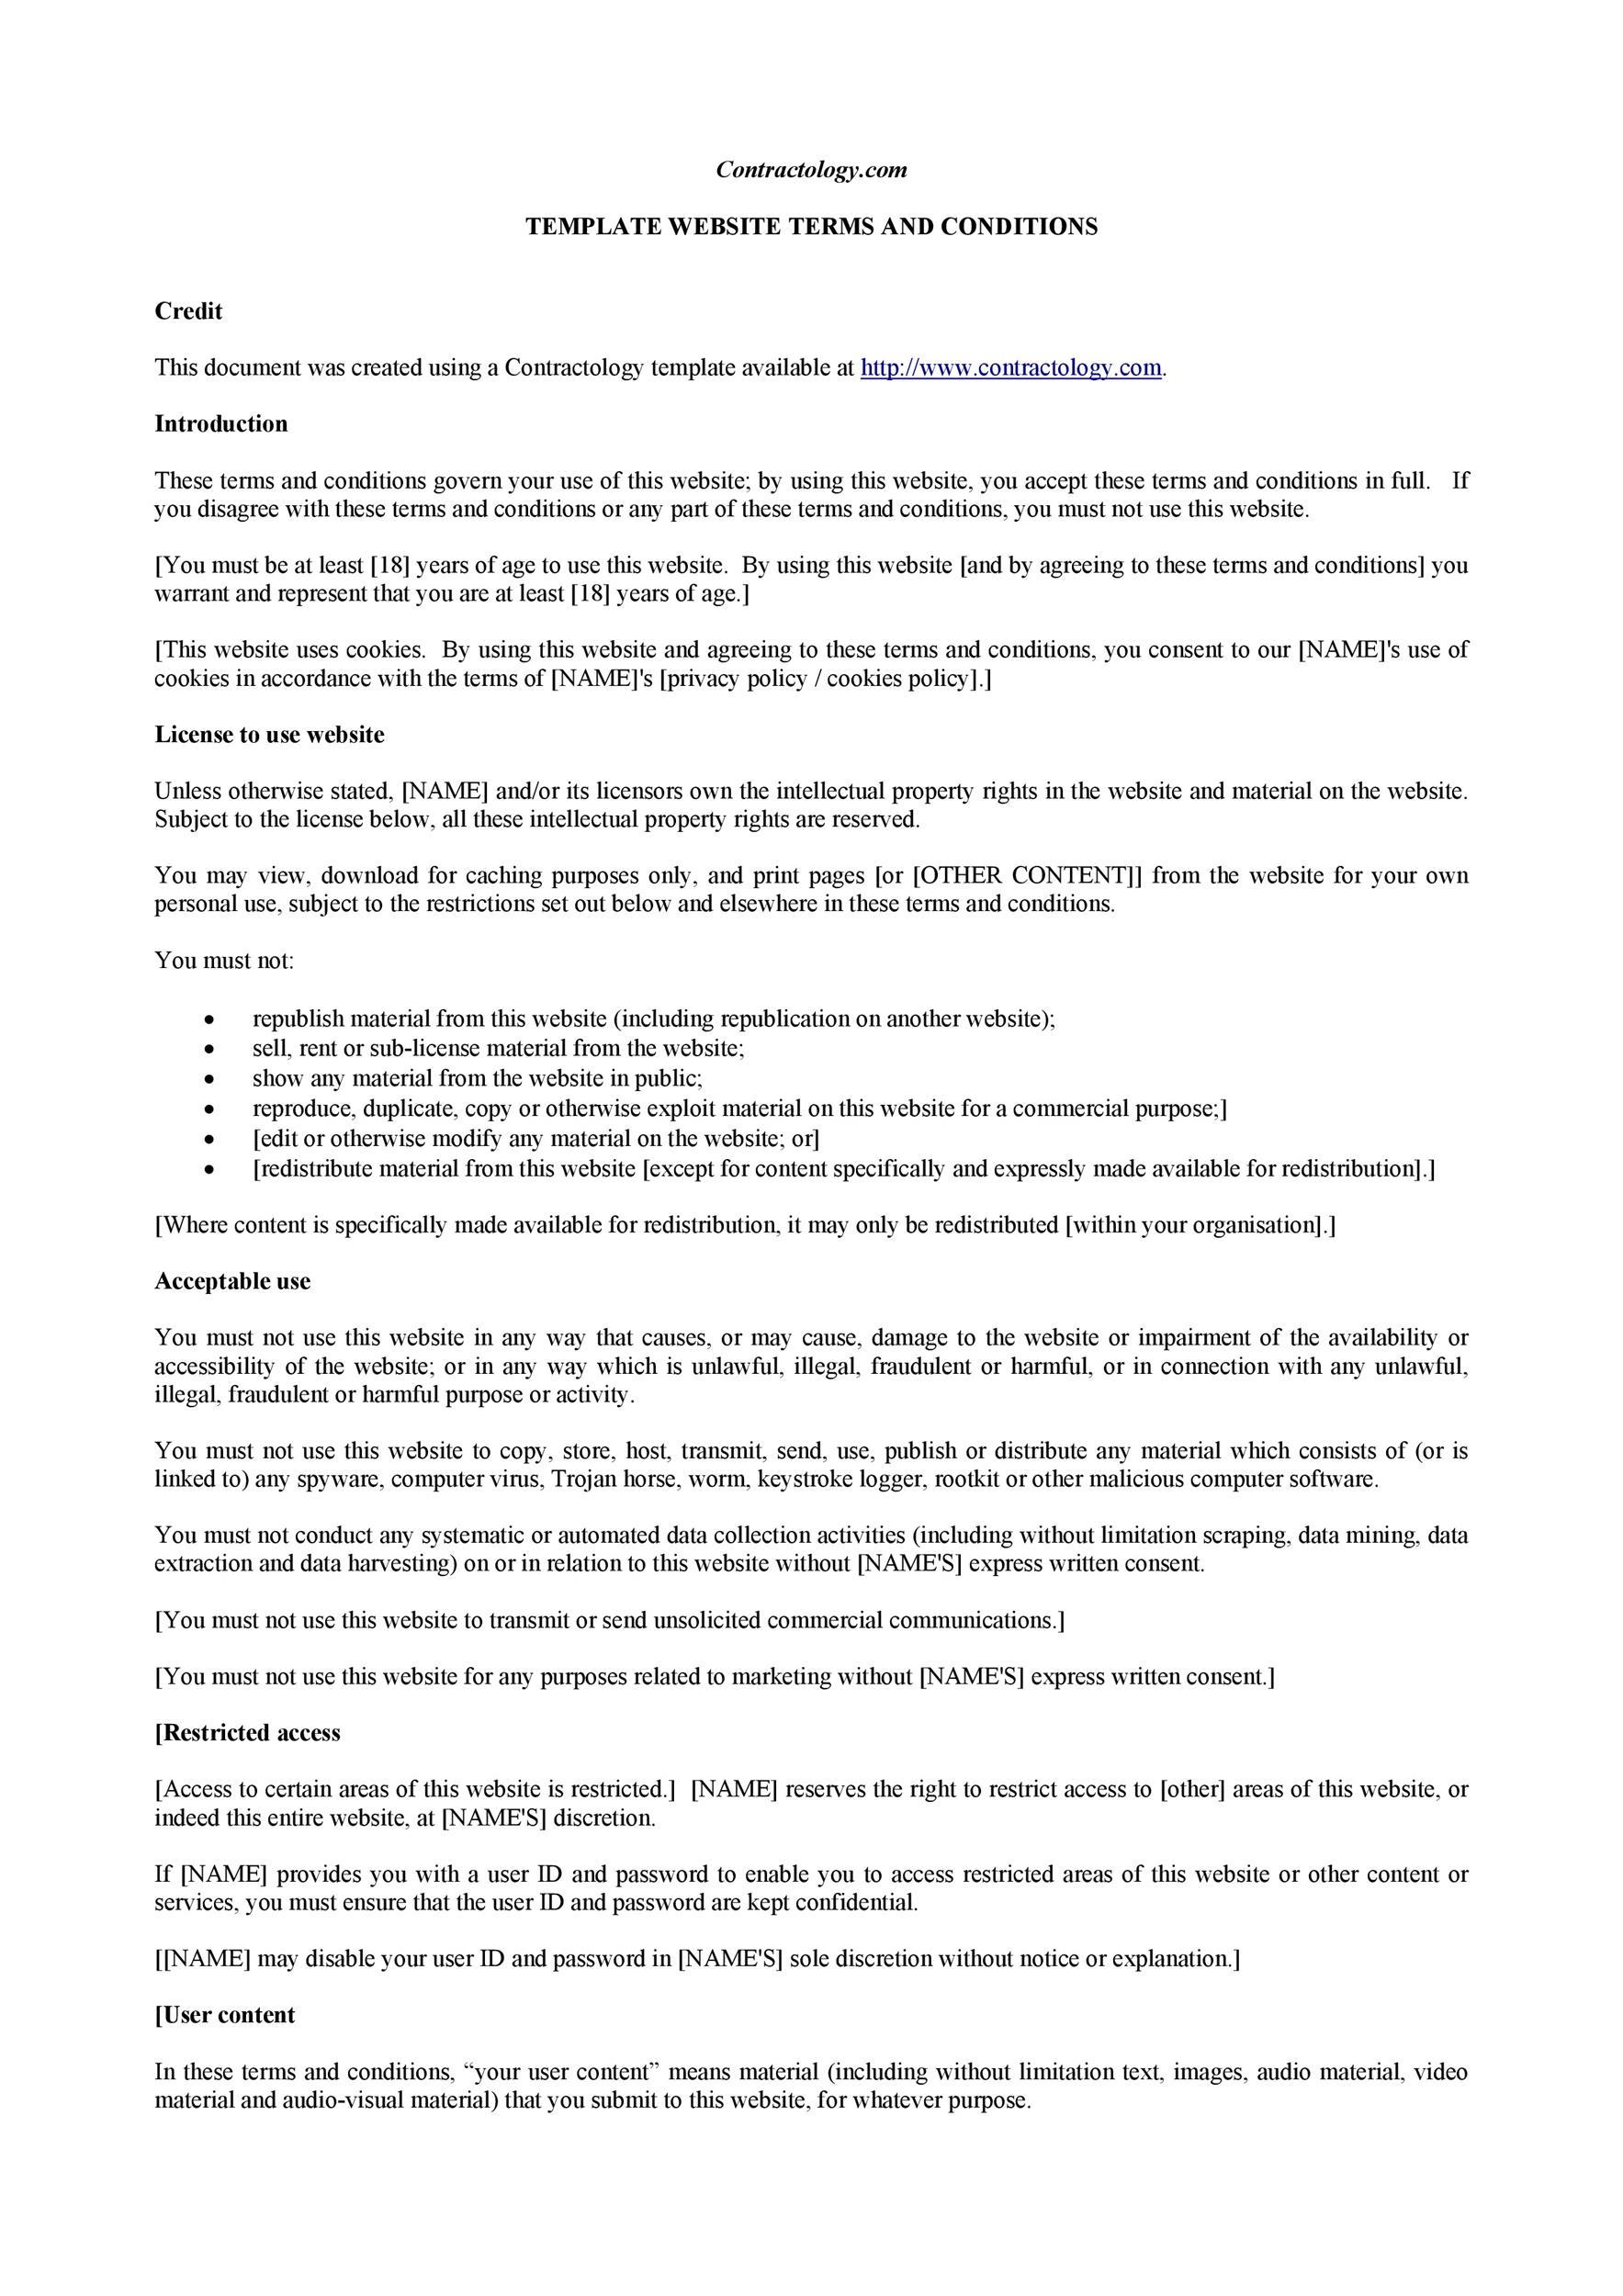 Free terms and conditions template 04